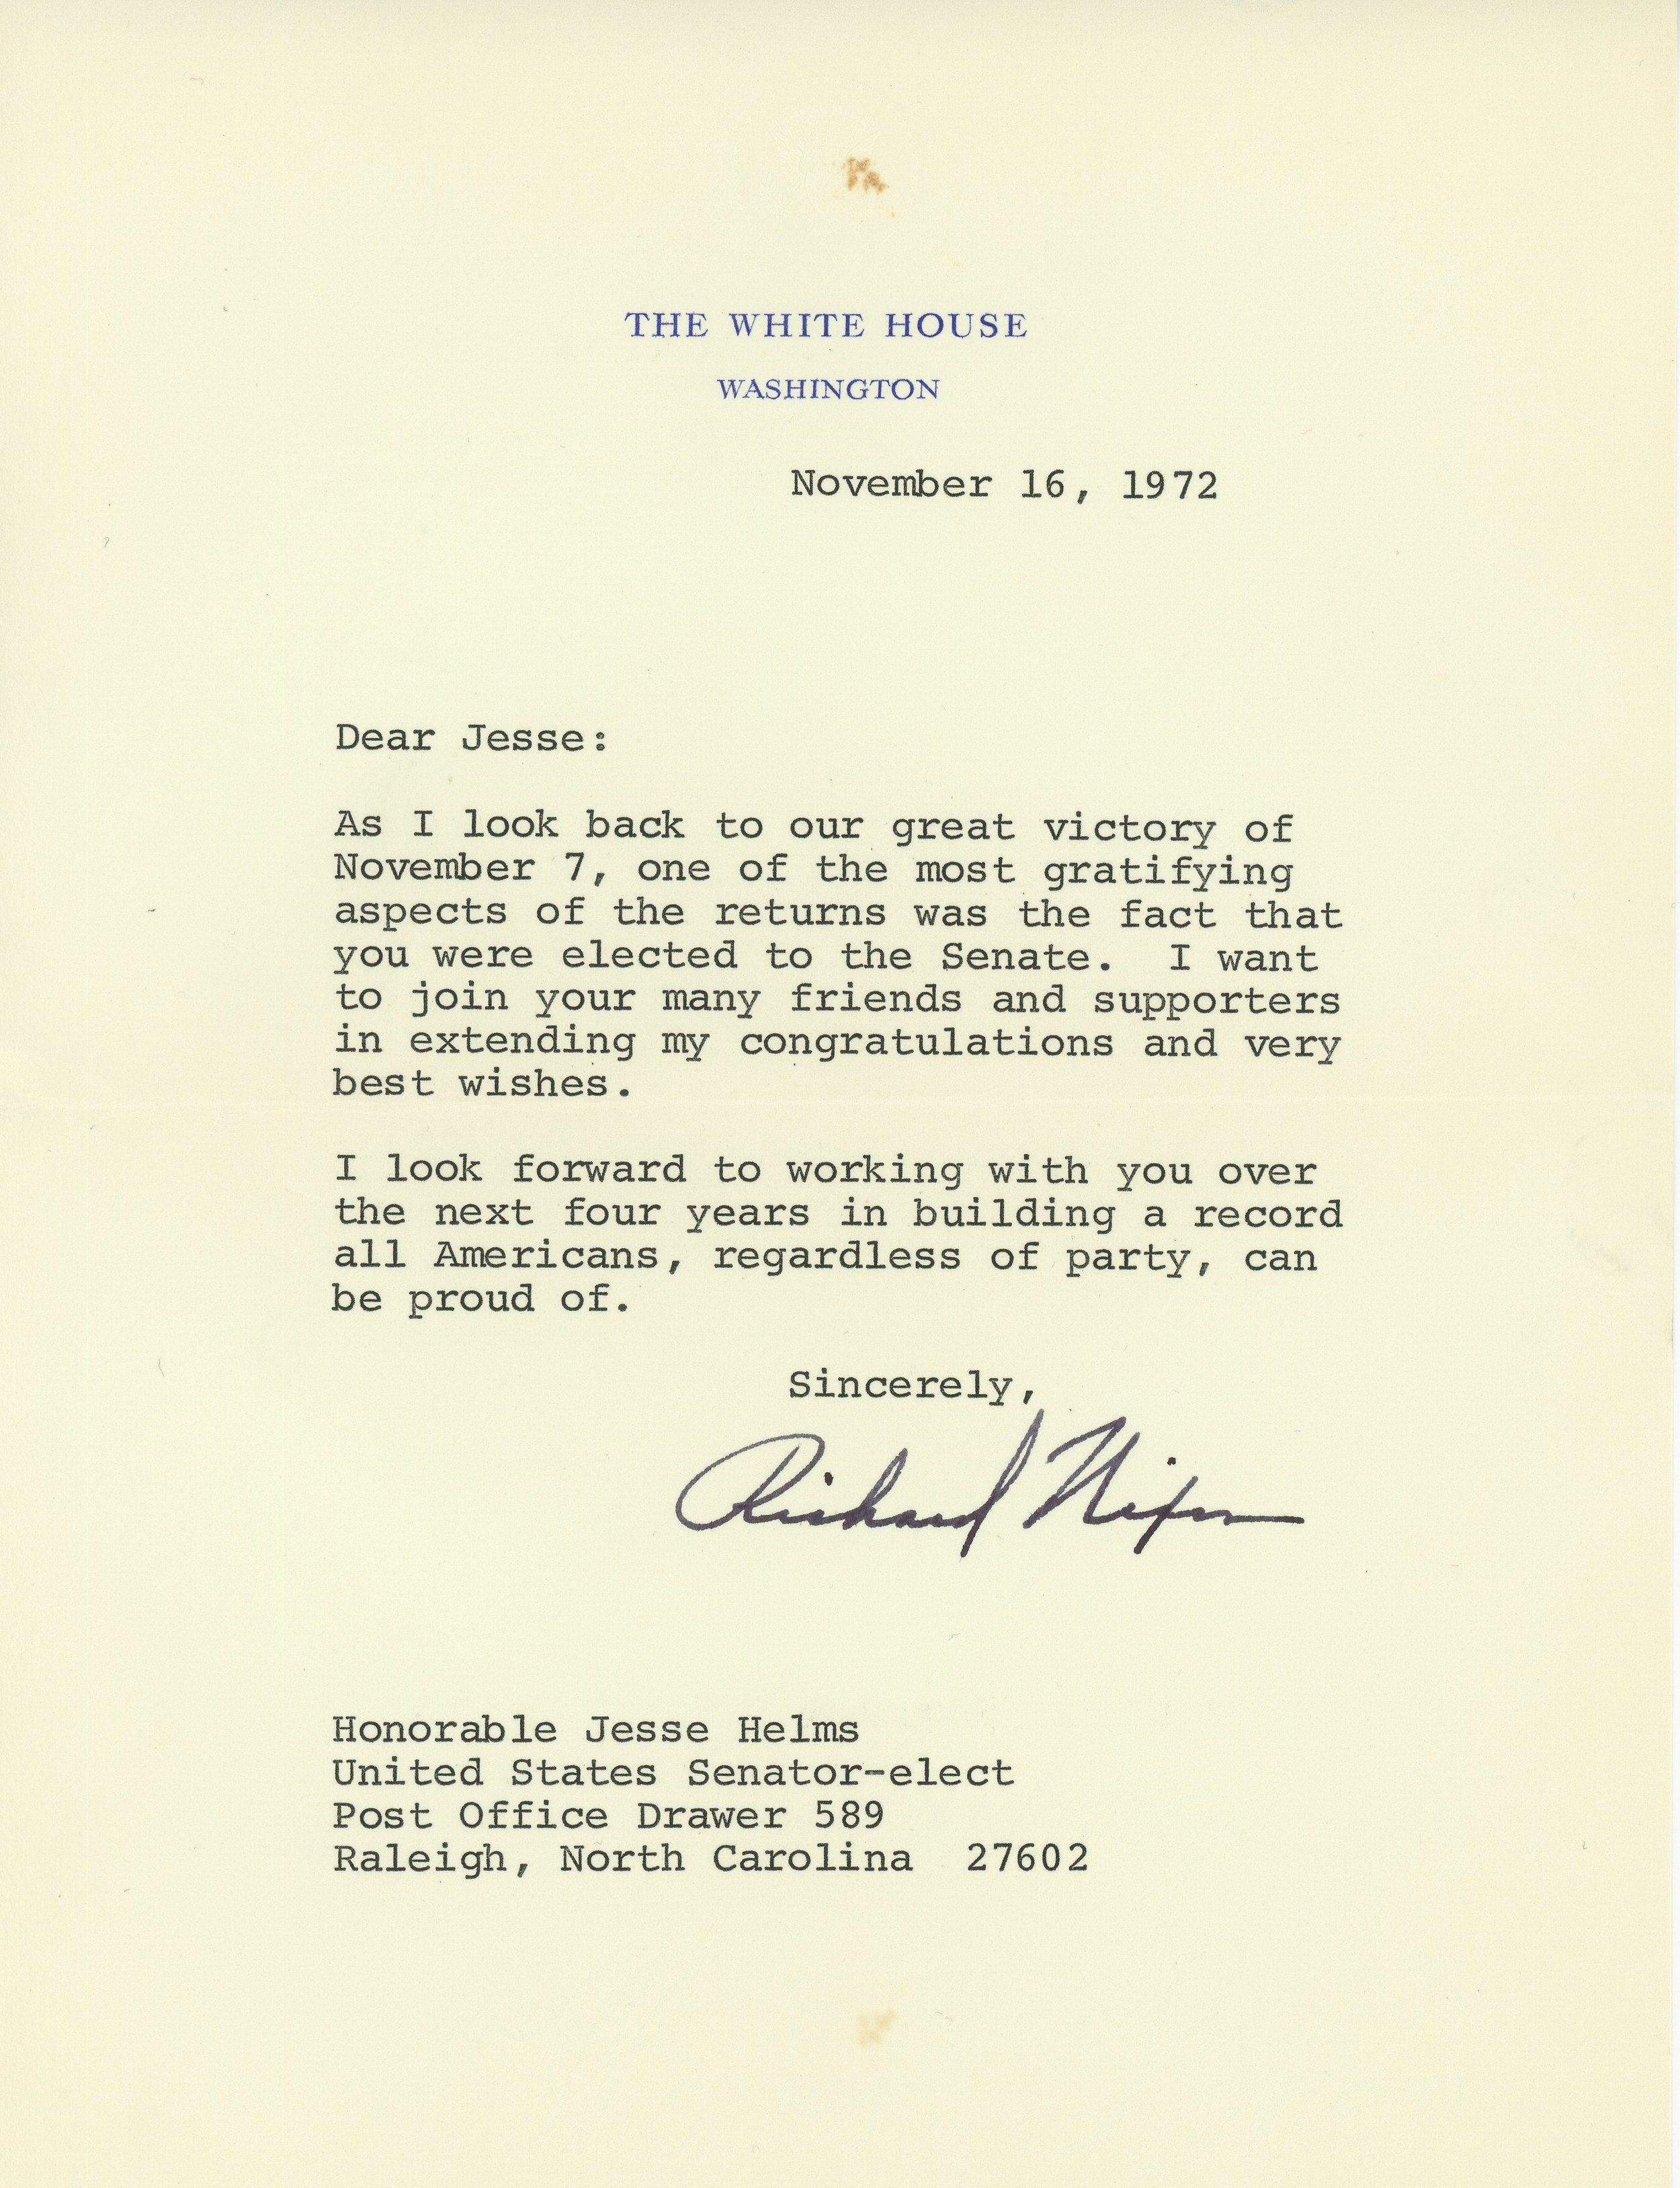 Letter of congratulations to newly elected Senator Jesse Helms from President Richard Nixon.